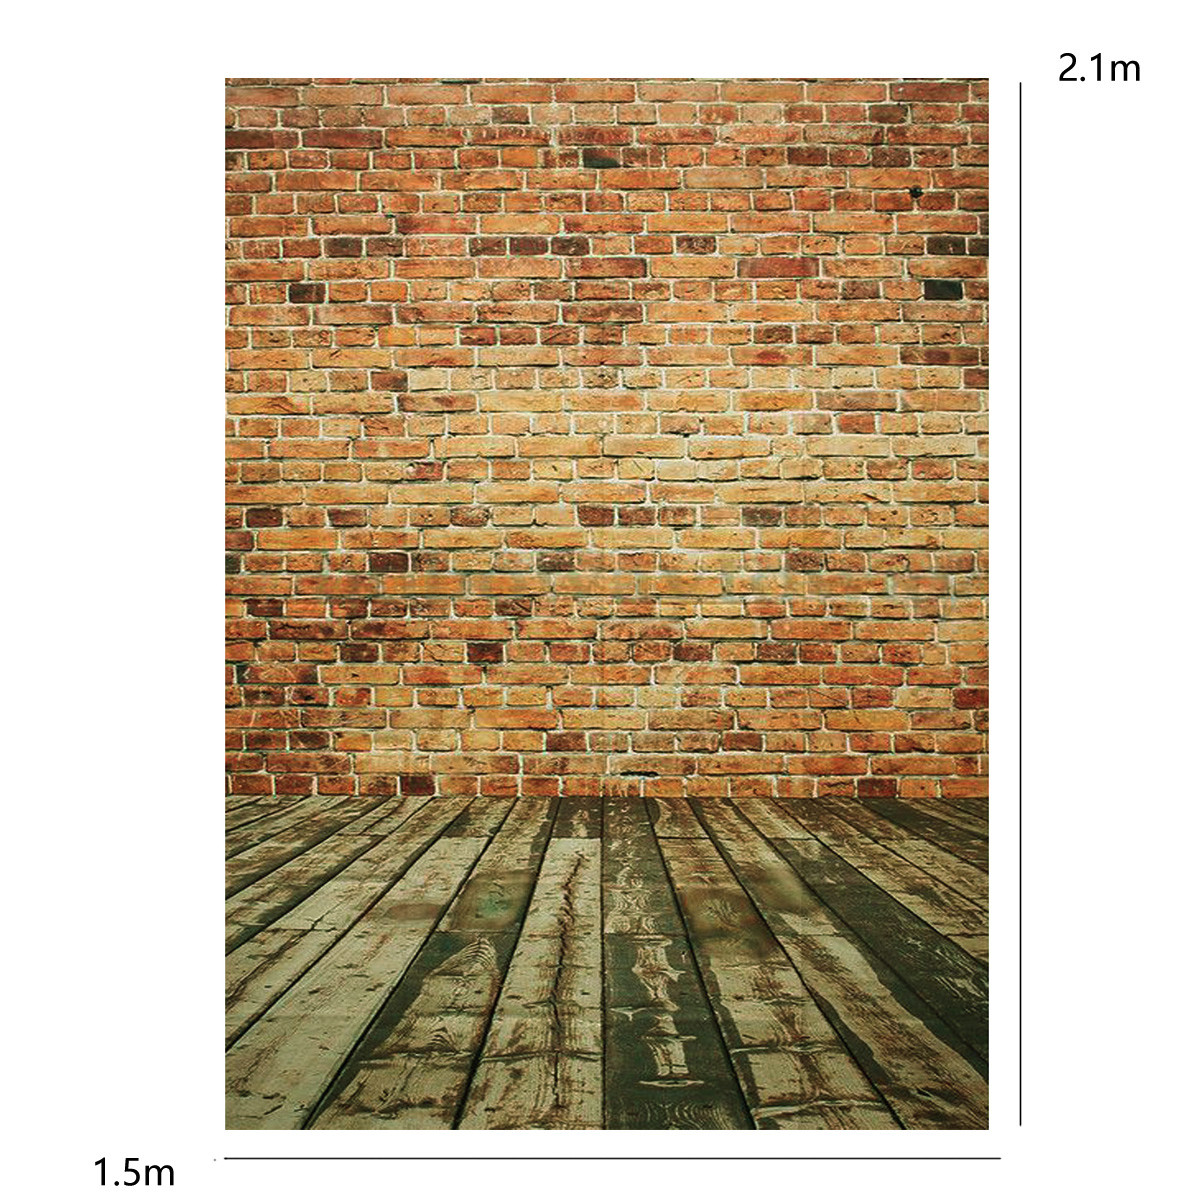 5x7ft Wood Floor Yellow Brick Wall Theme Photography Vinyl Background Backdrop for Studio 1.5x2.1m